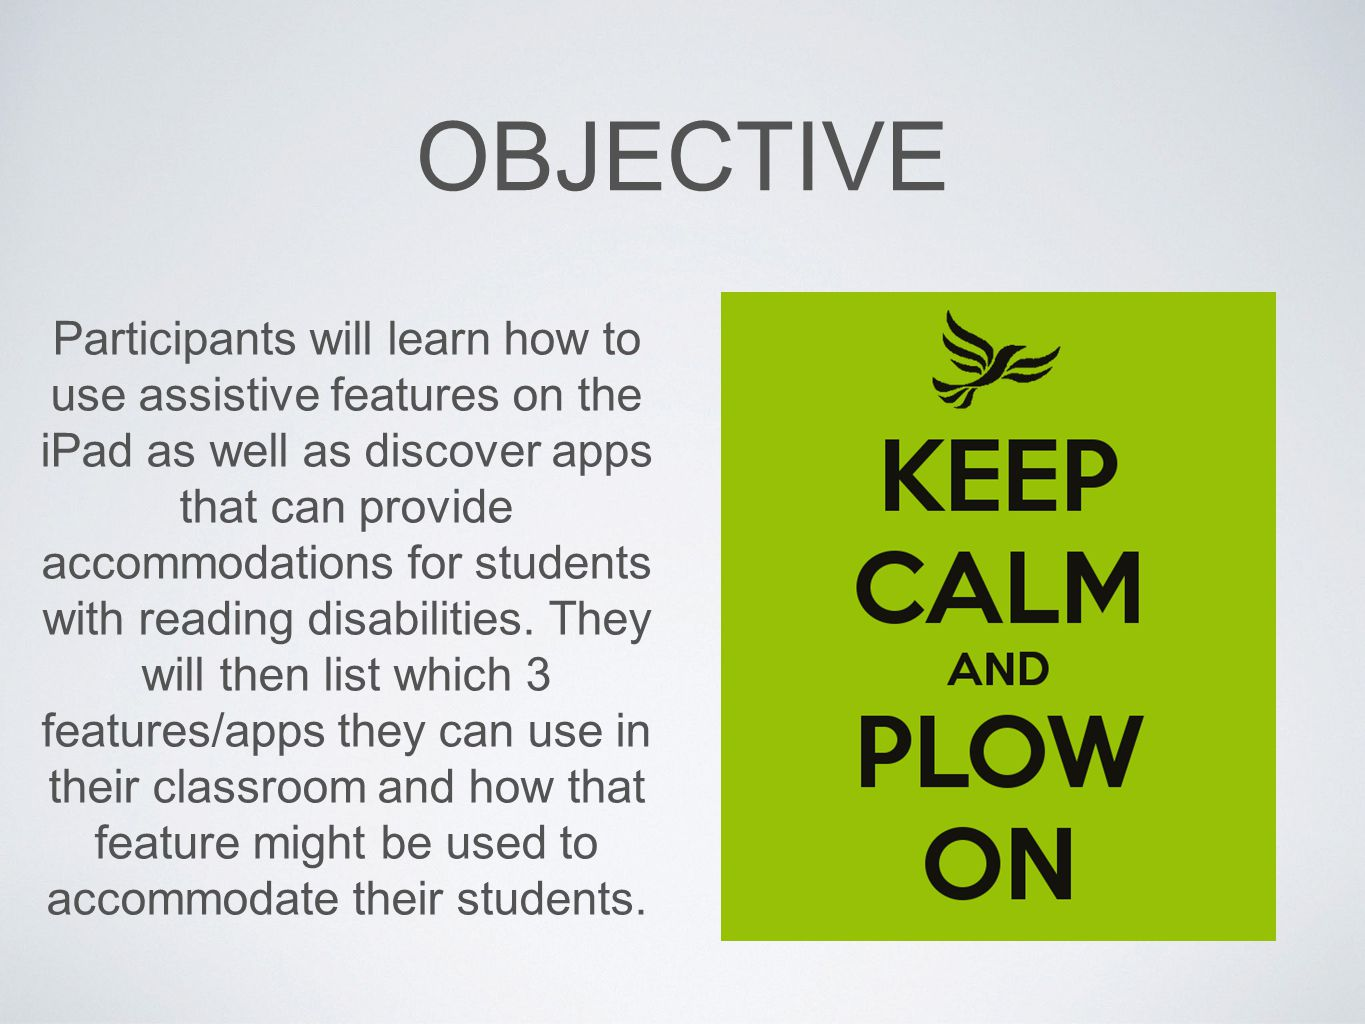 OBJECTIVE Participants will learn how to use assistive features on the iPad as well as discover apps that can provide accommodations for students with reading disabilities.